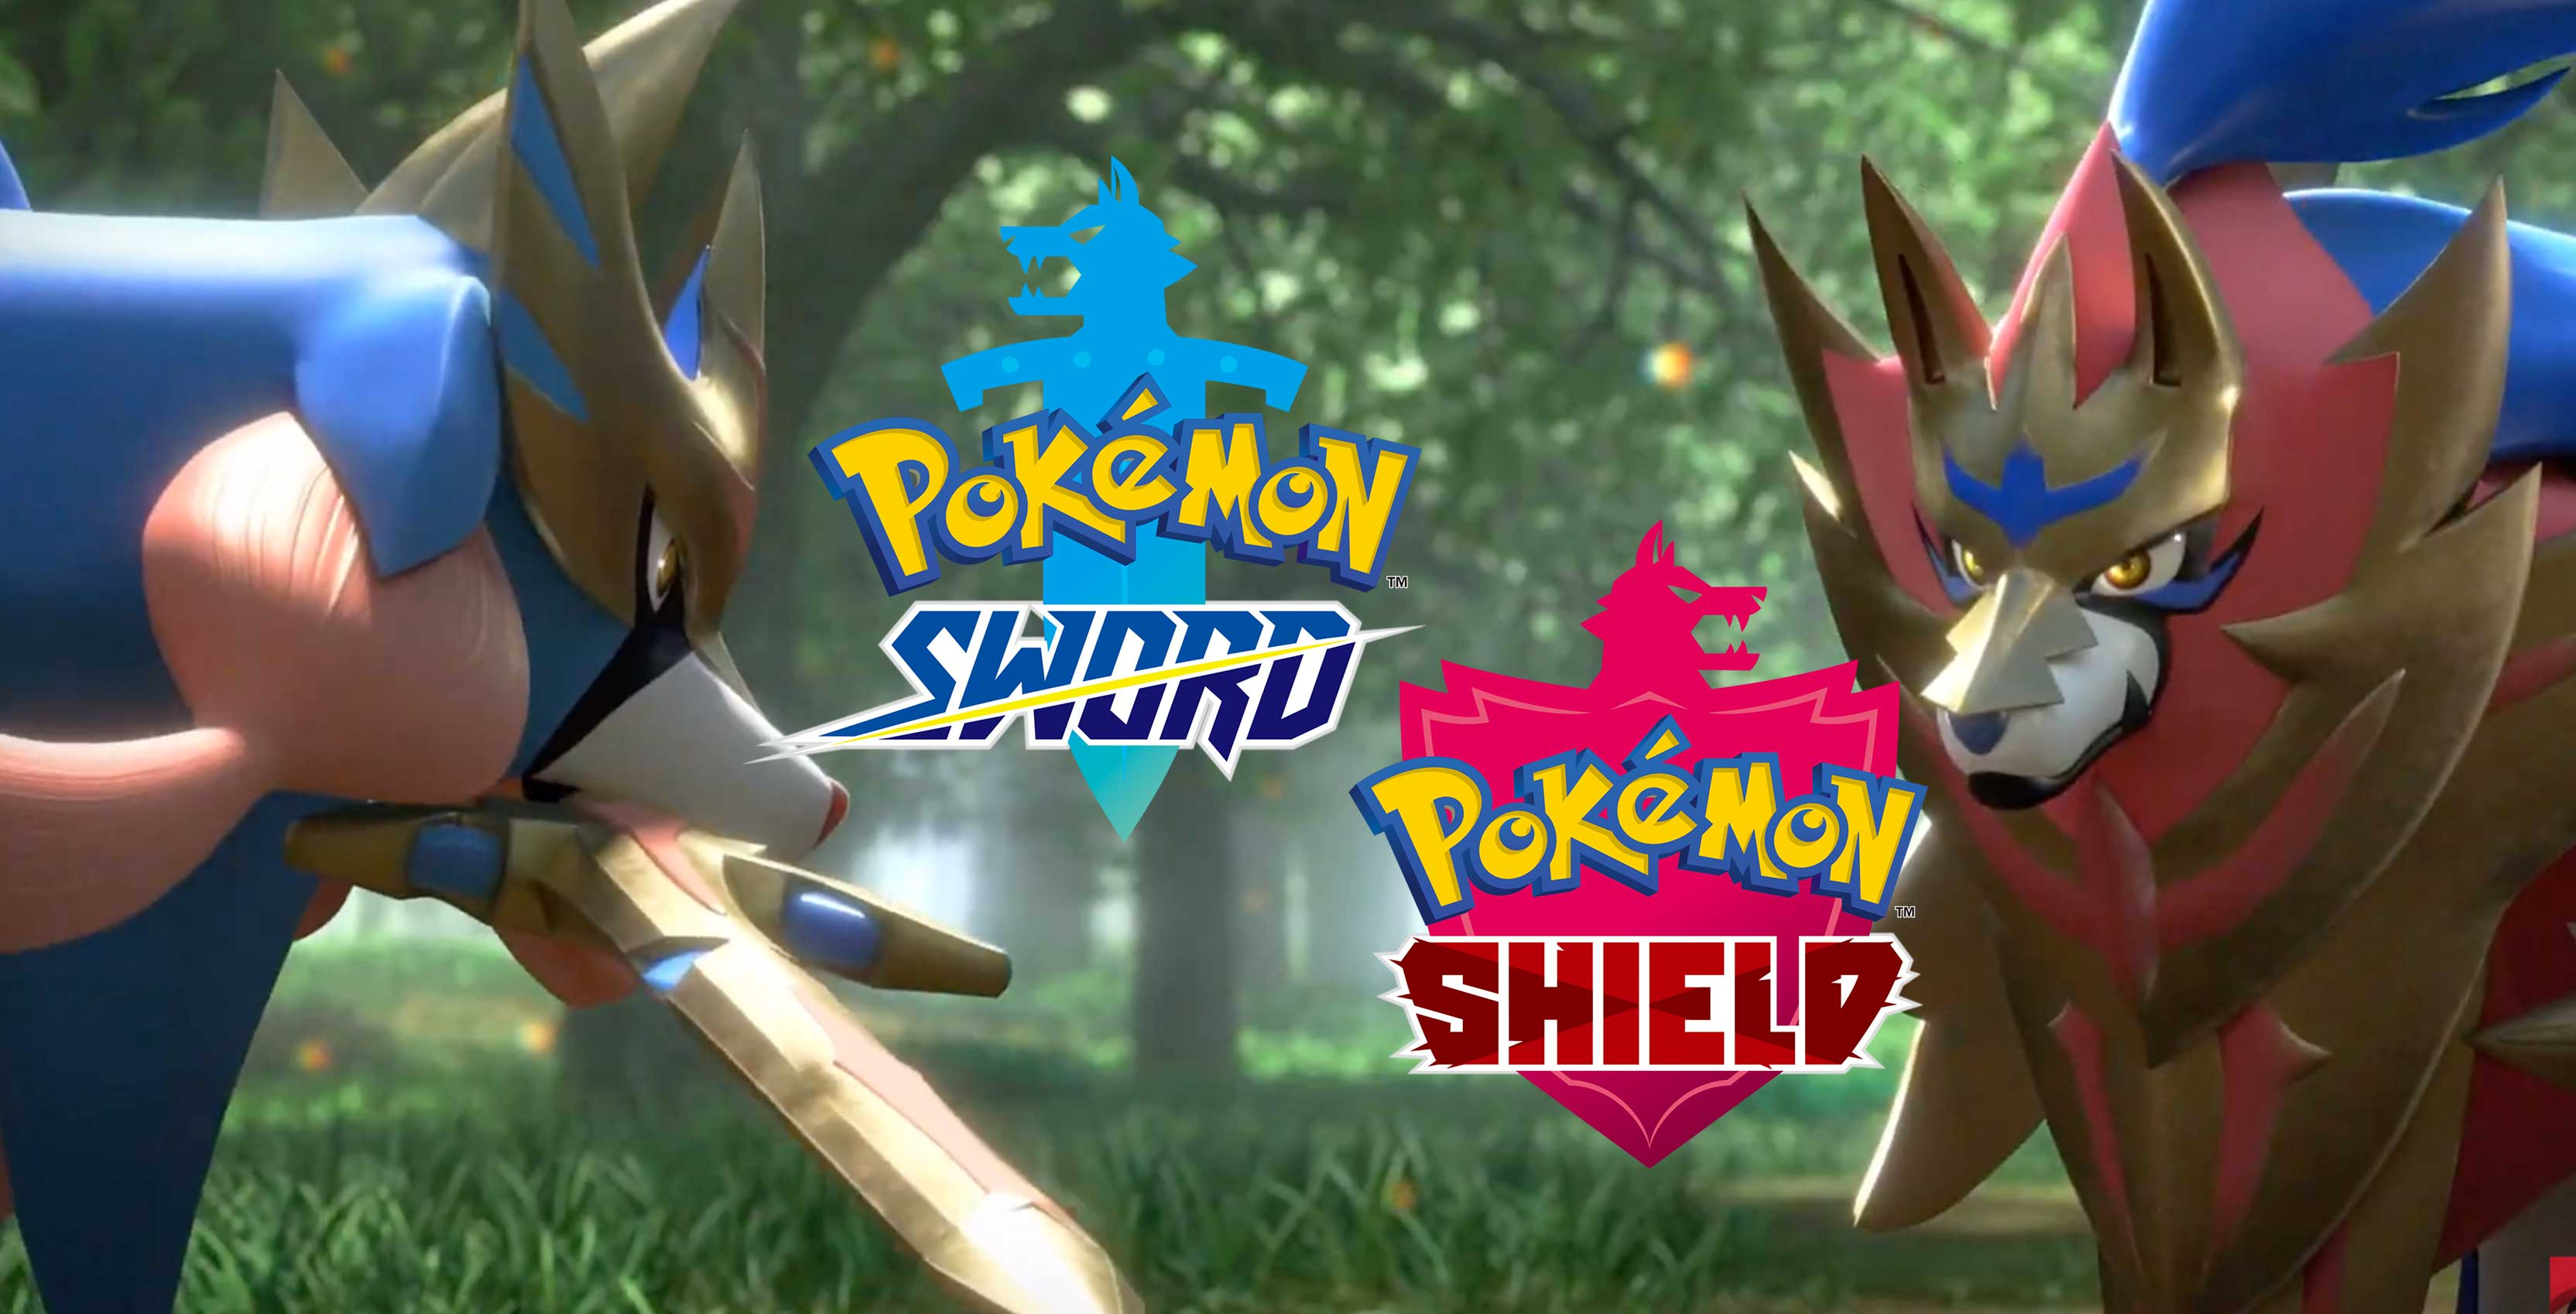 Pokemon Sword And Shield Launch On November 15th